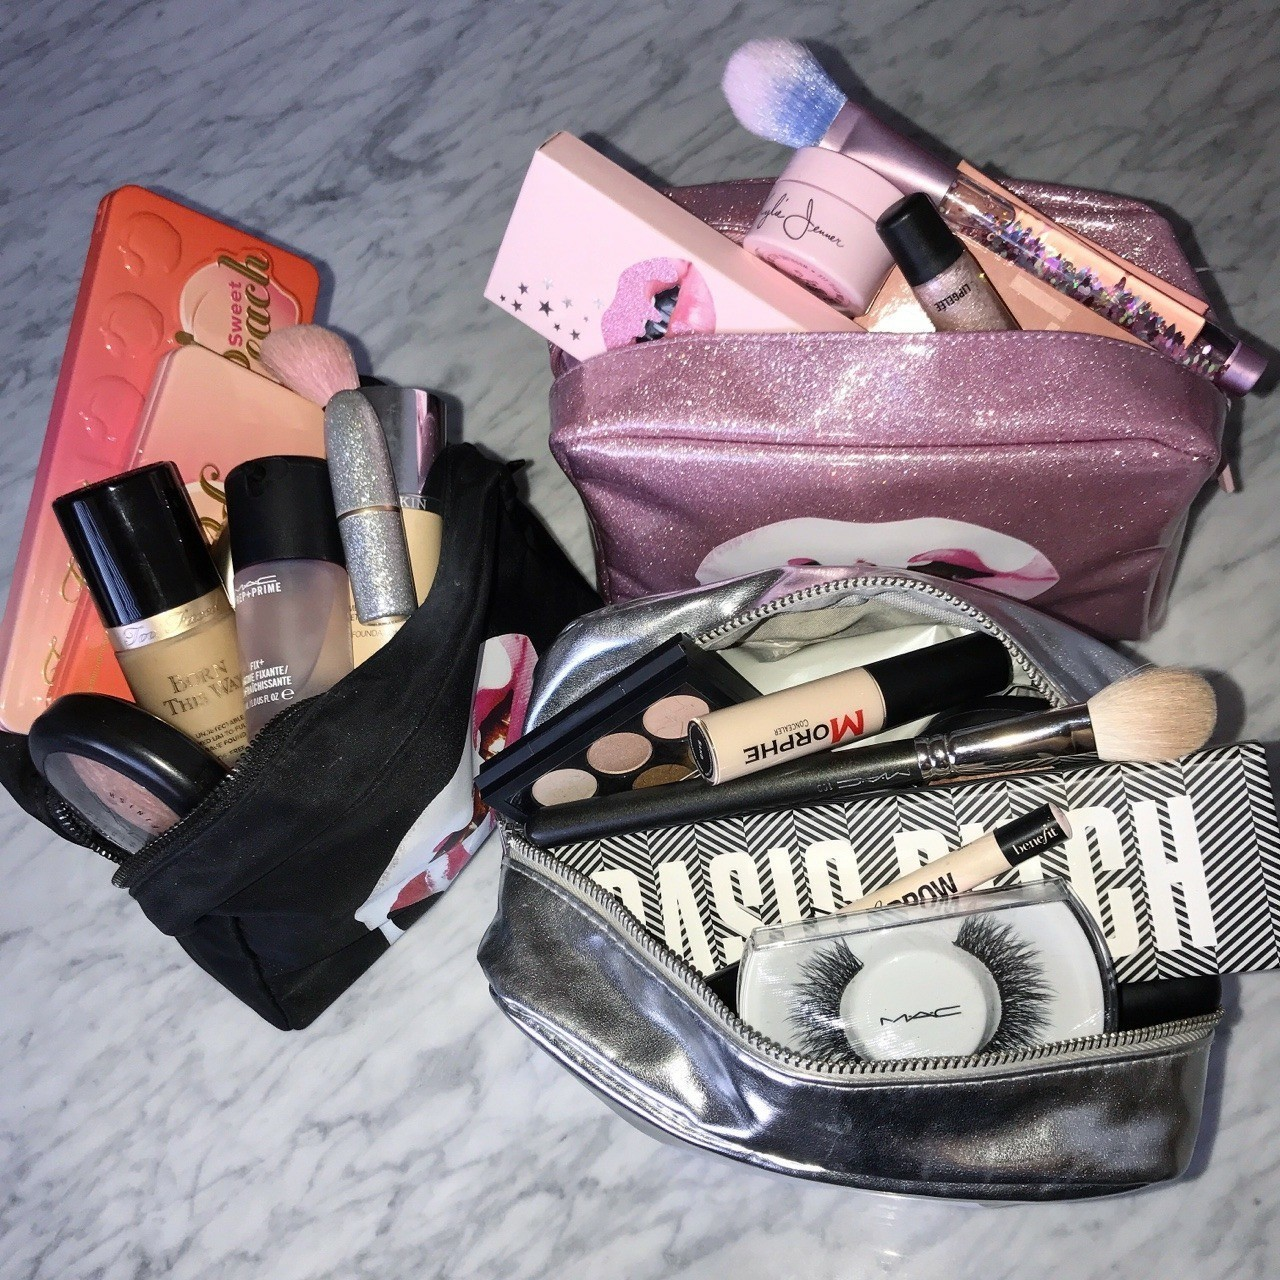 Makeup Bags Shared By Lovely On We Heart It